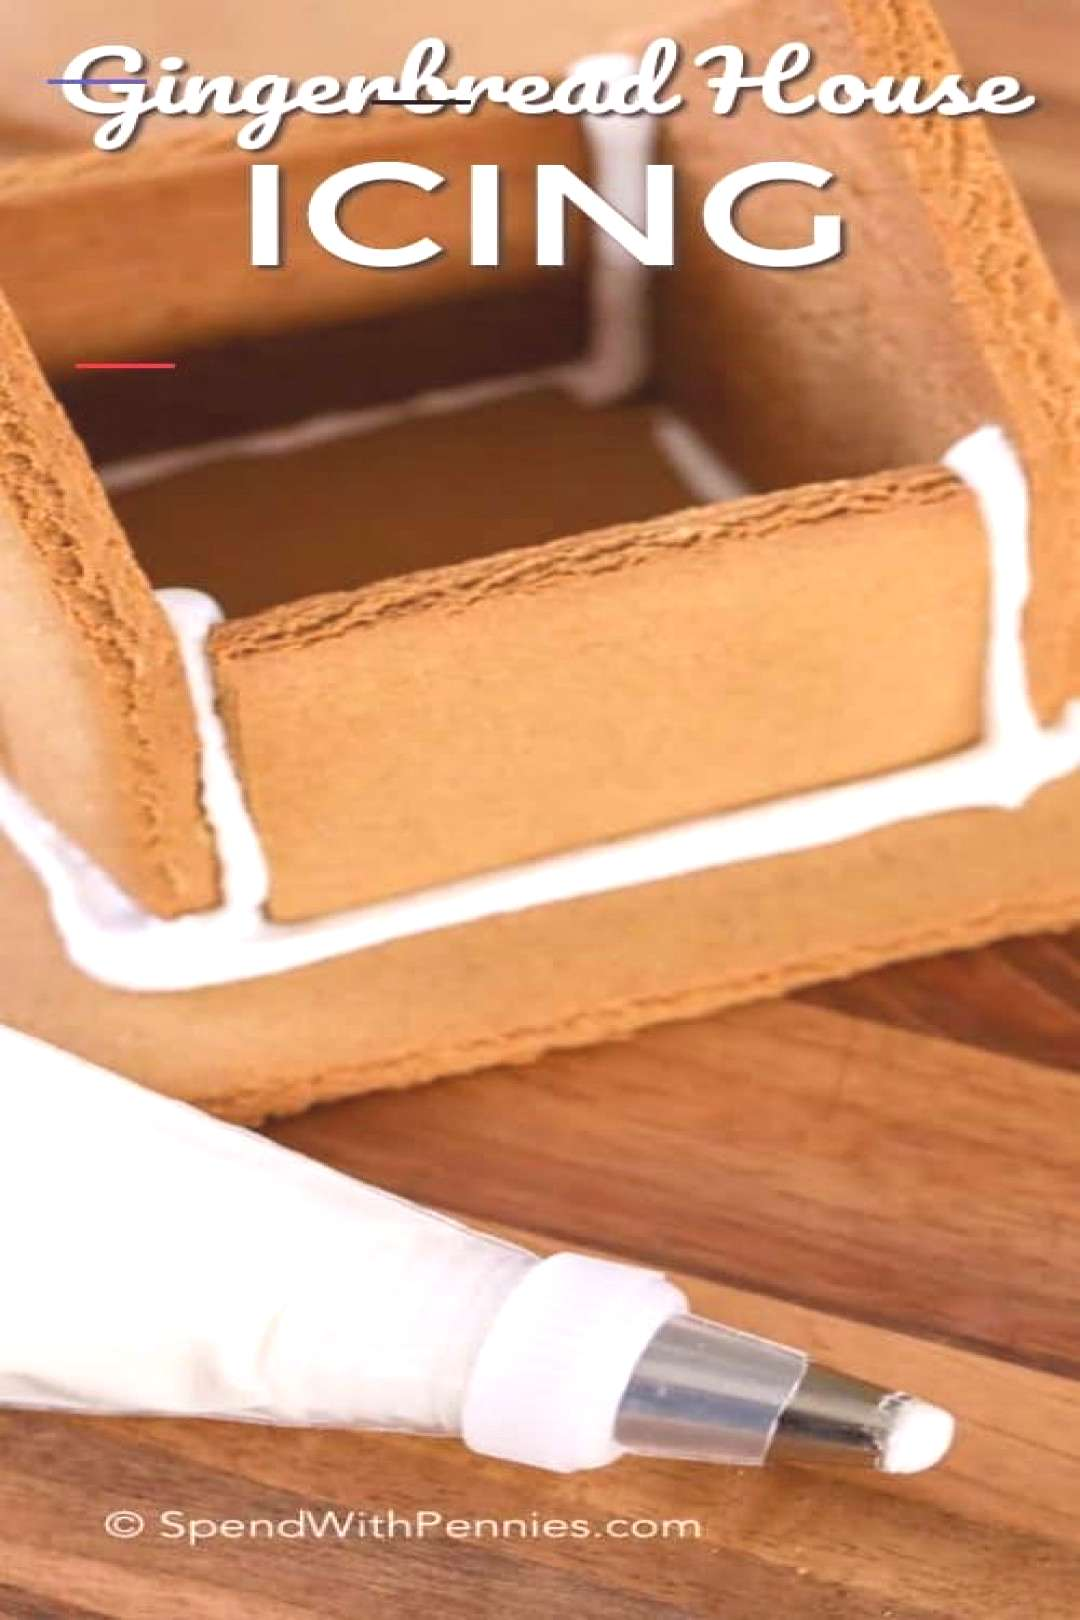 Gingerbread House Icing - Spend With Pennies Gingerbread House Icing - Spend Wit... - Gingerbread